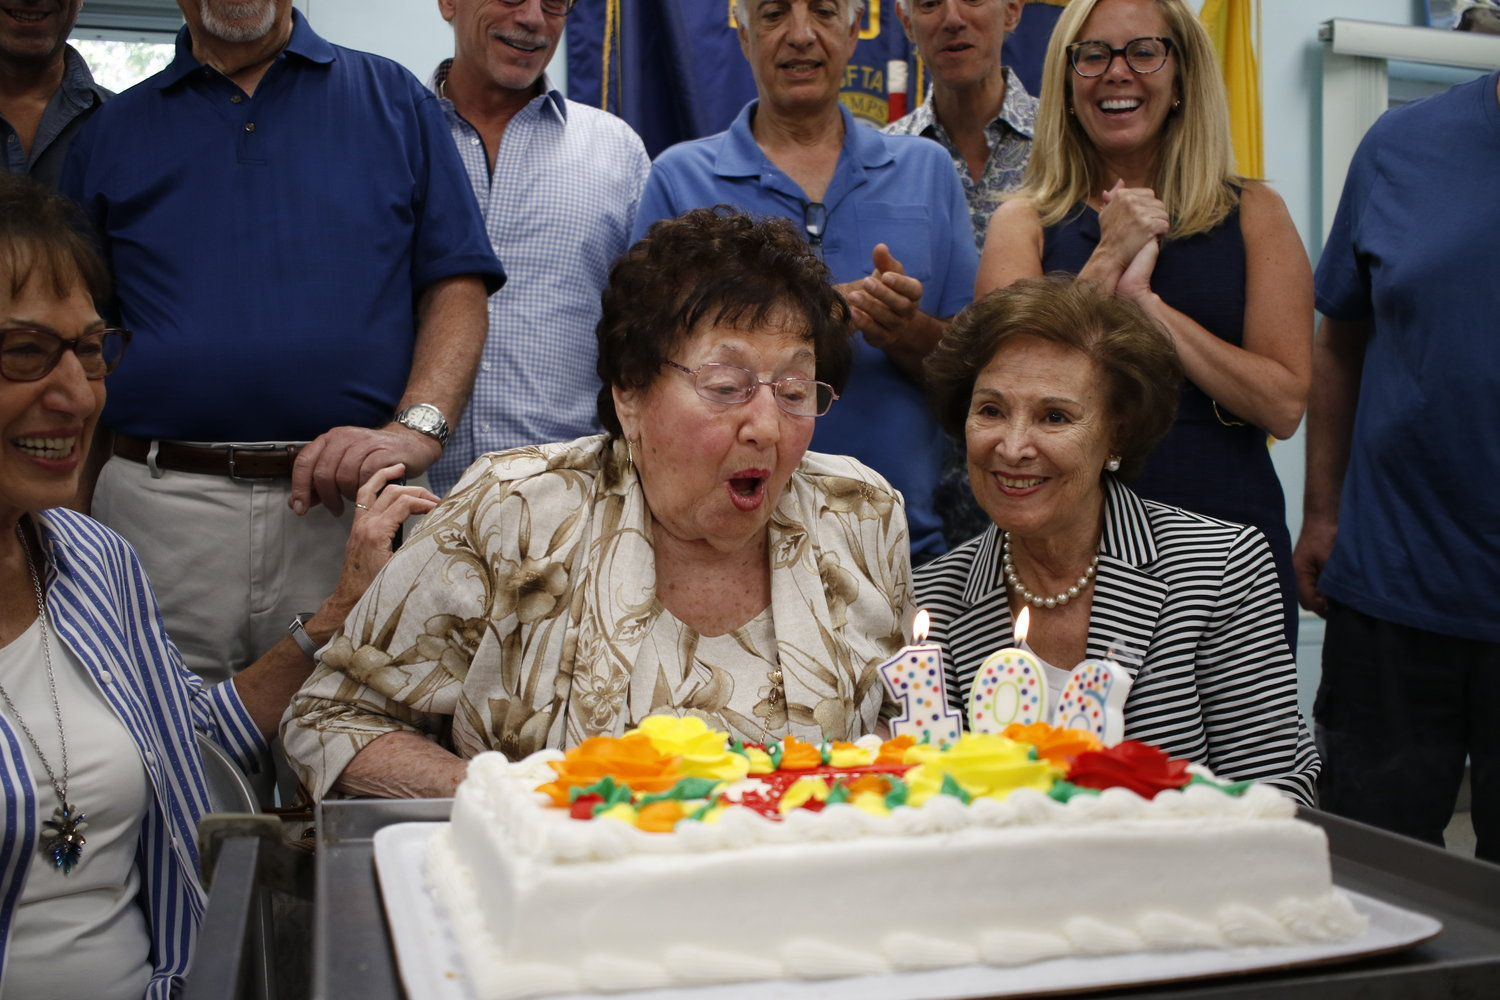 Baldwinite Ida Genna Scaduto turned 106 on Sept. 25. Her family and friends threw her a party at the Baldwin Senior Center on Sept. 24.